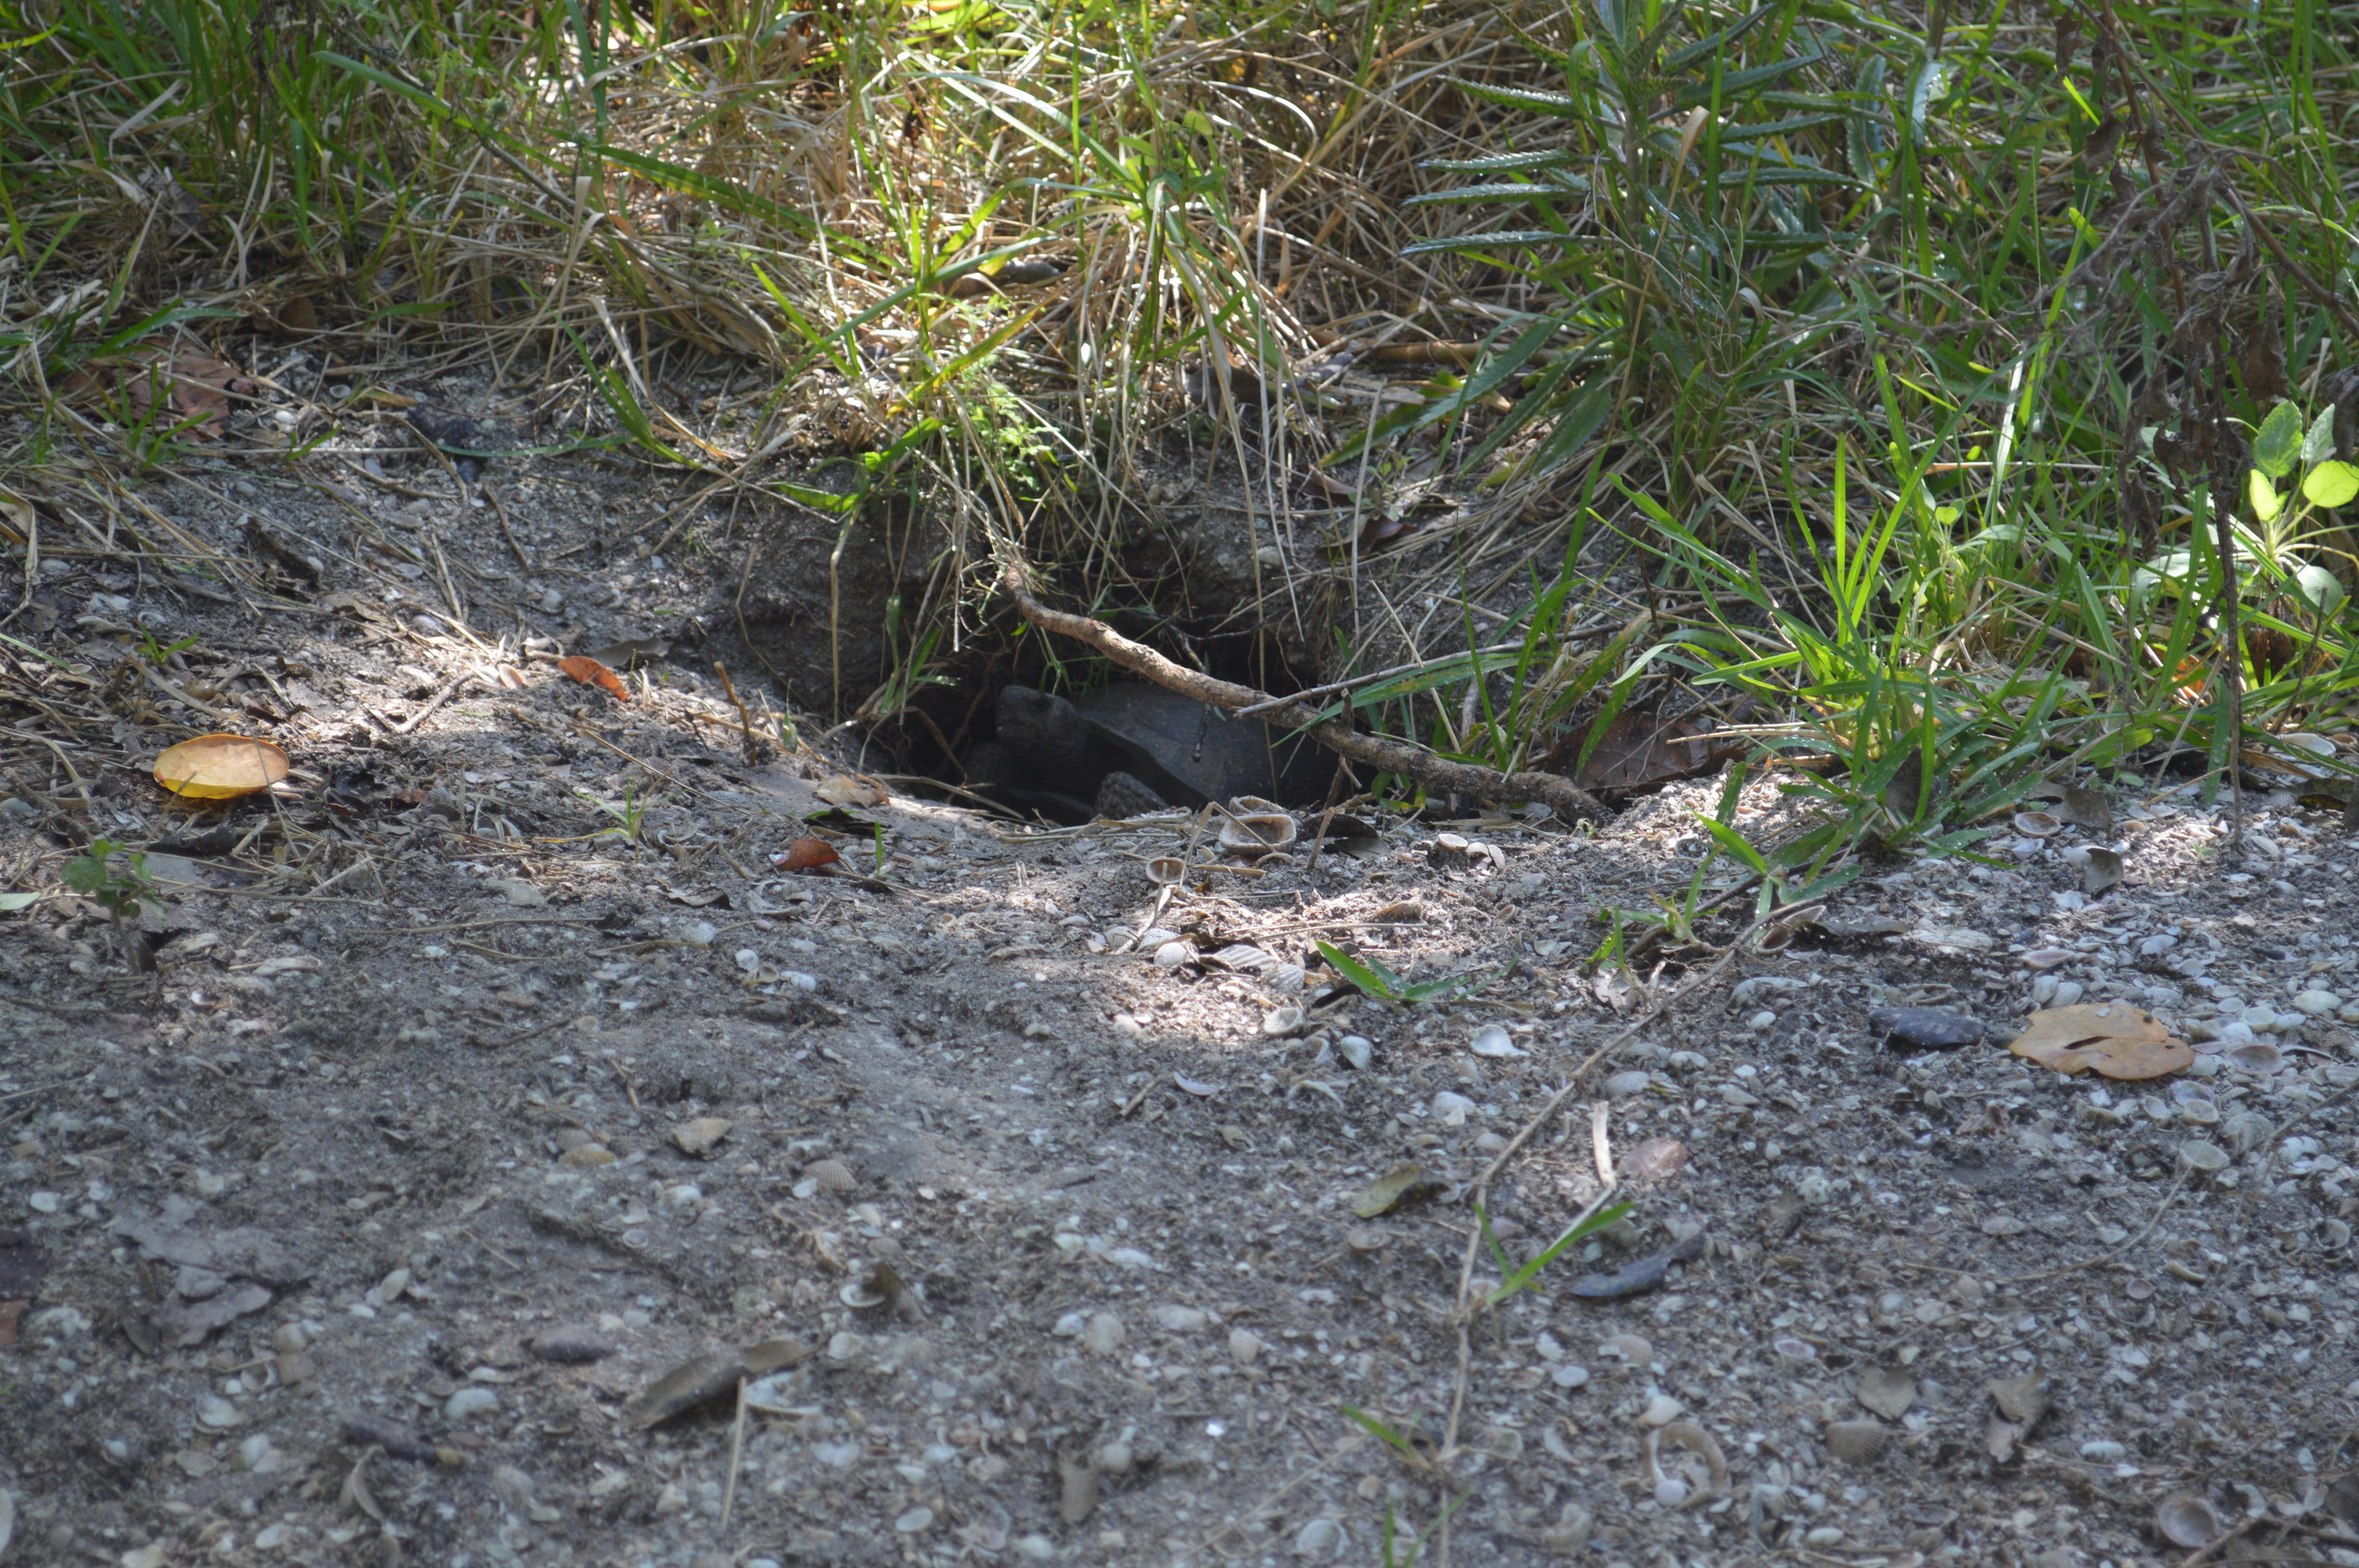 Our resident female gopher tortoise (  Gopherus polyphemus)    peeking at us from her burrow.